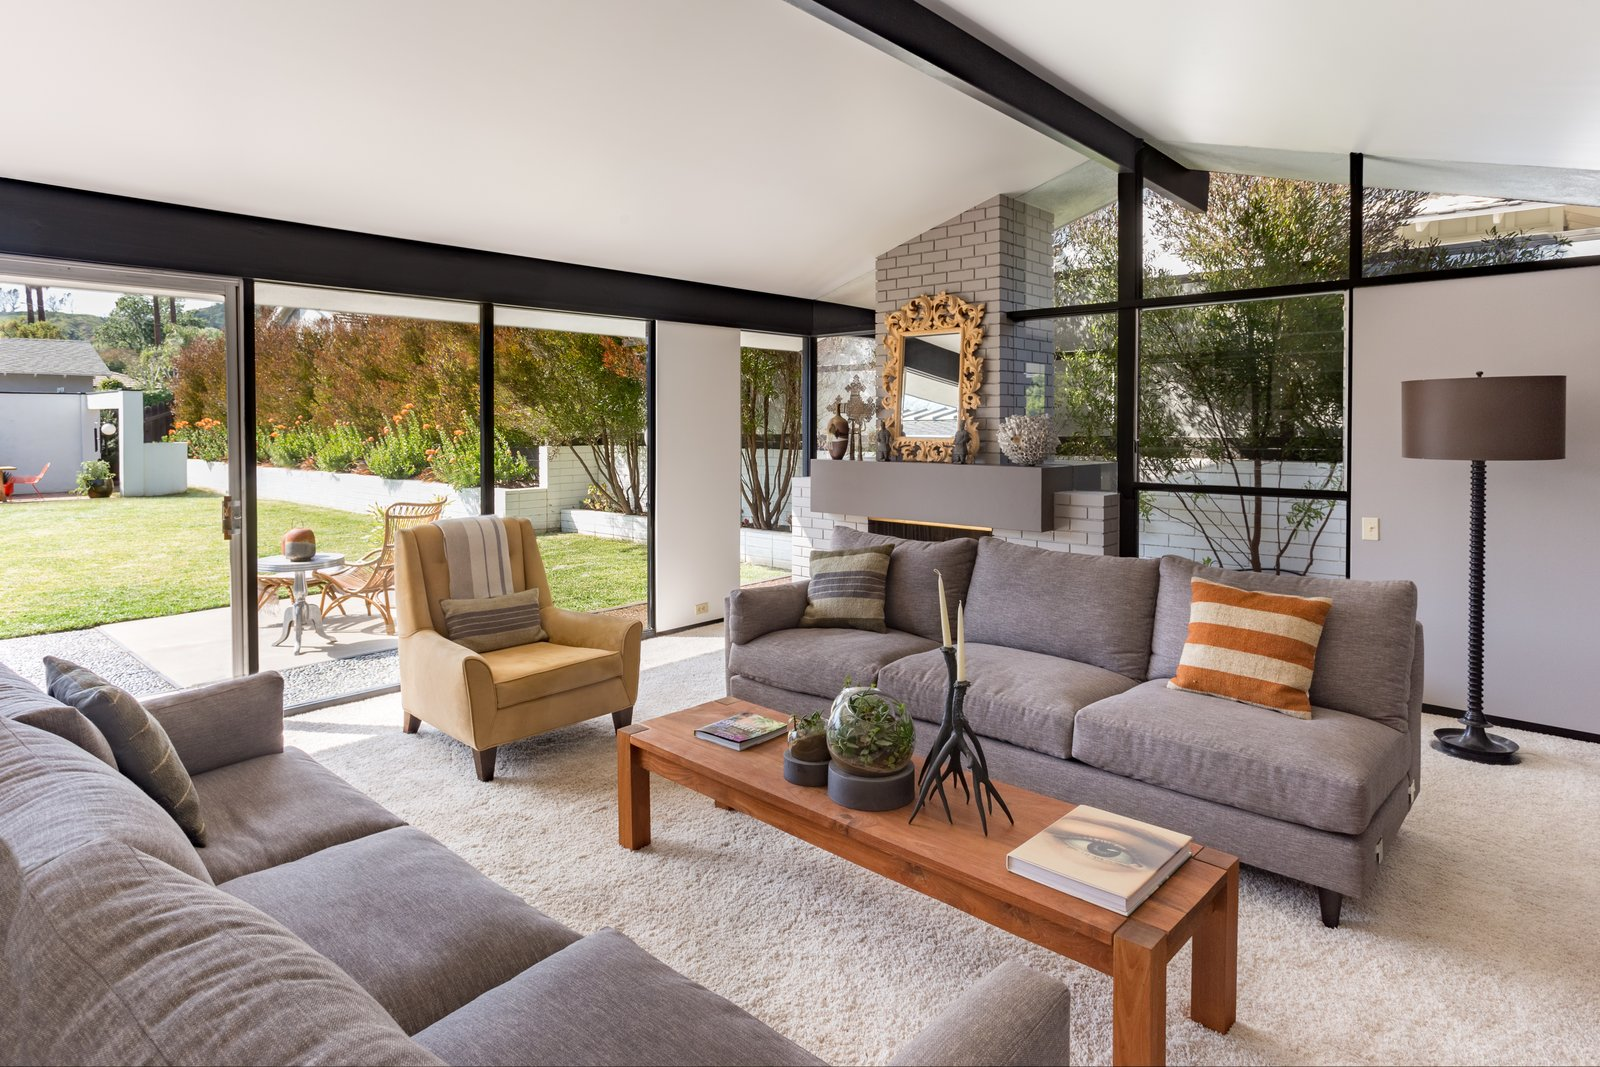 Living Room, Sofa, Chair, Coffee Tables, Floor Lighting, and Standard Layout Fireplace  Photo 5 of 14 in Offered at $899K, a Restored Midcentury Abode Shines in Southern California